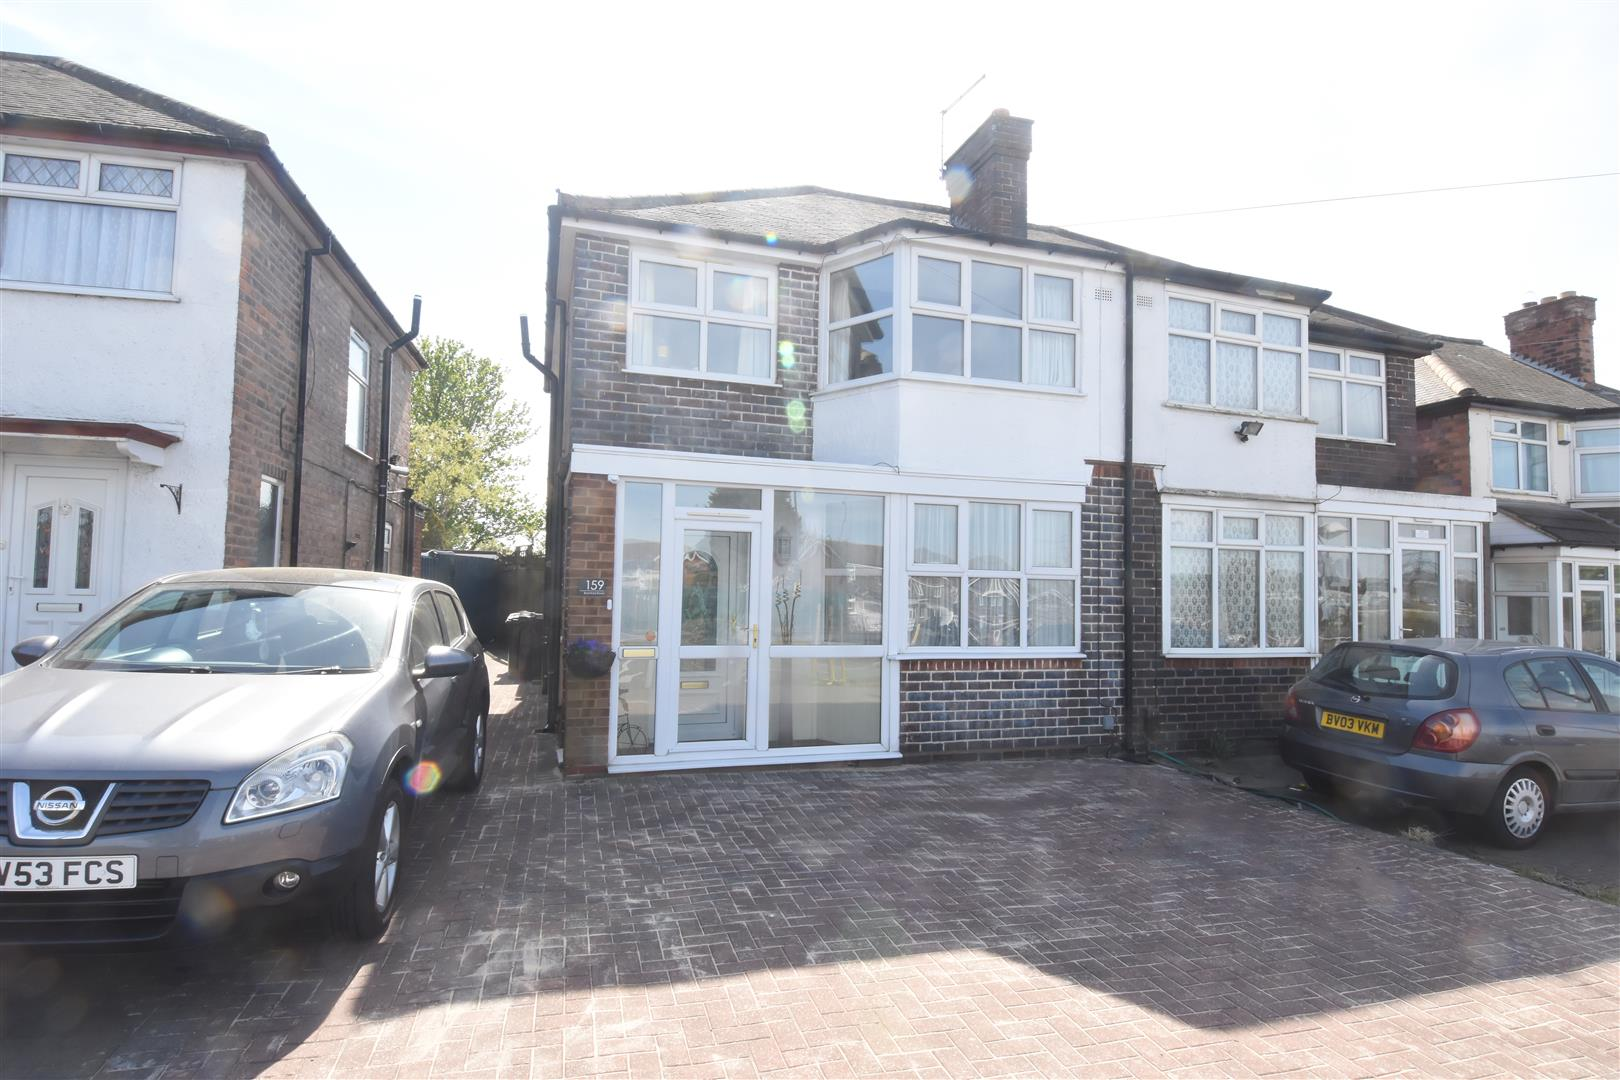 3 bed house for sale in Bromford Road, Birmingham, B36